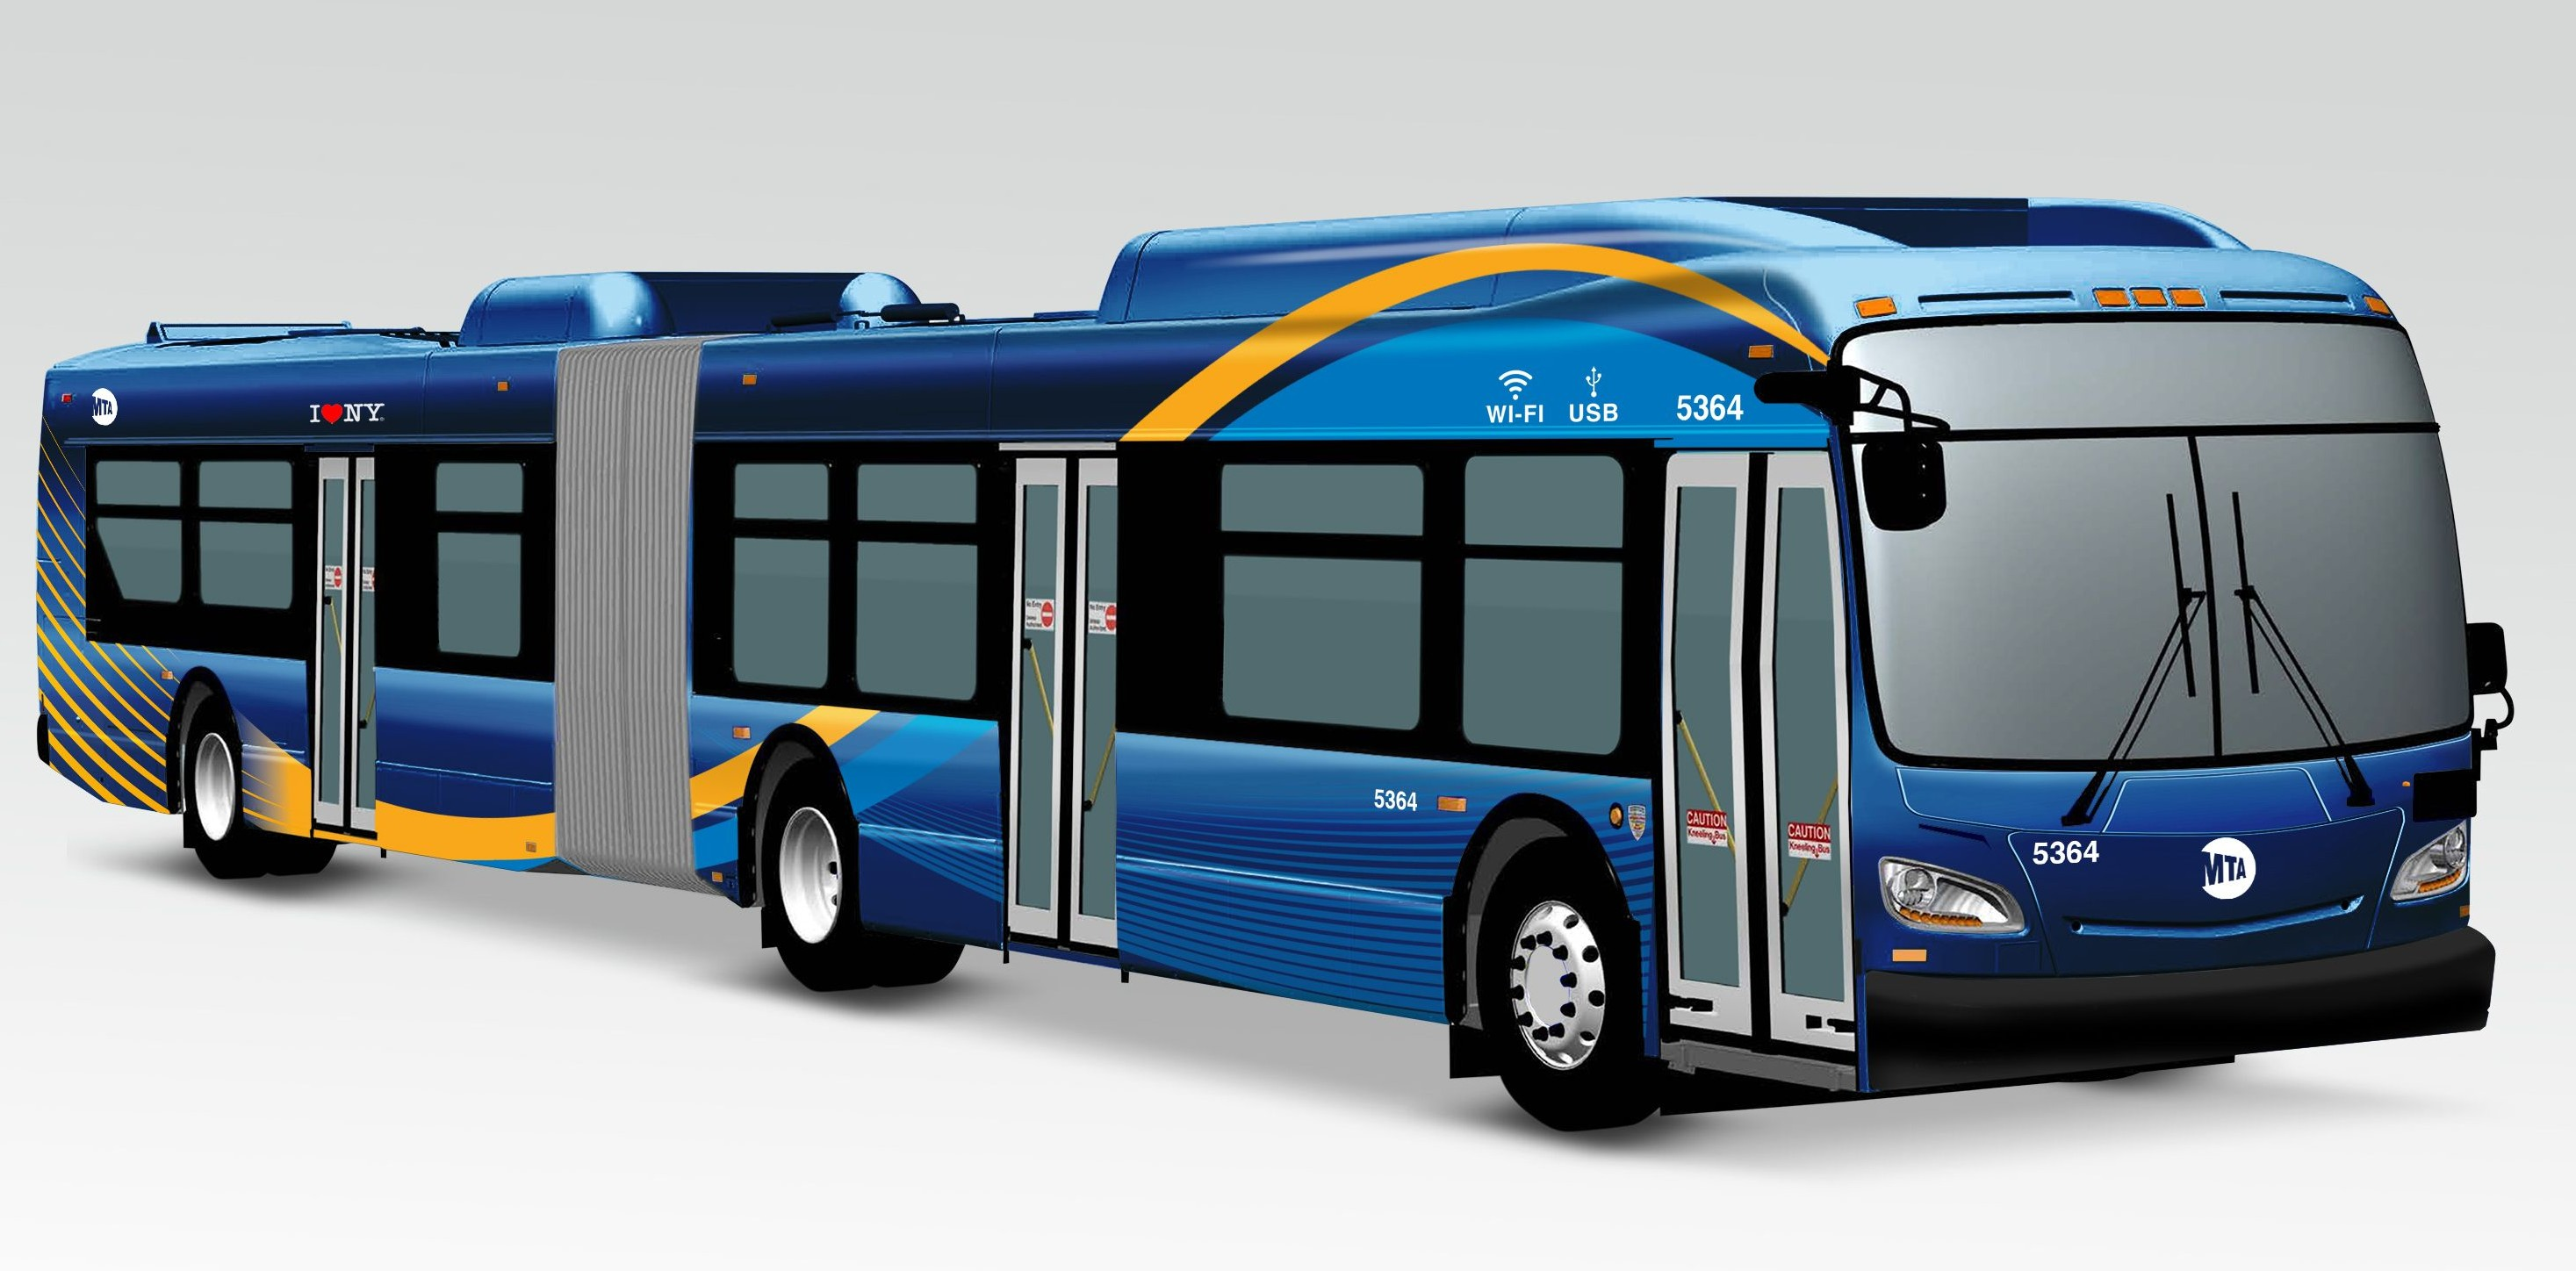 new MTA bus, Governor Cuomo, NYC buses, transportation technology